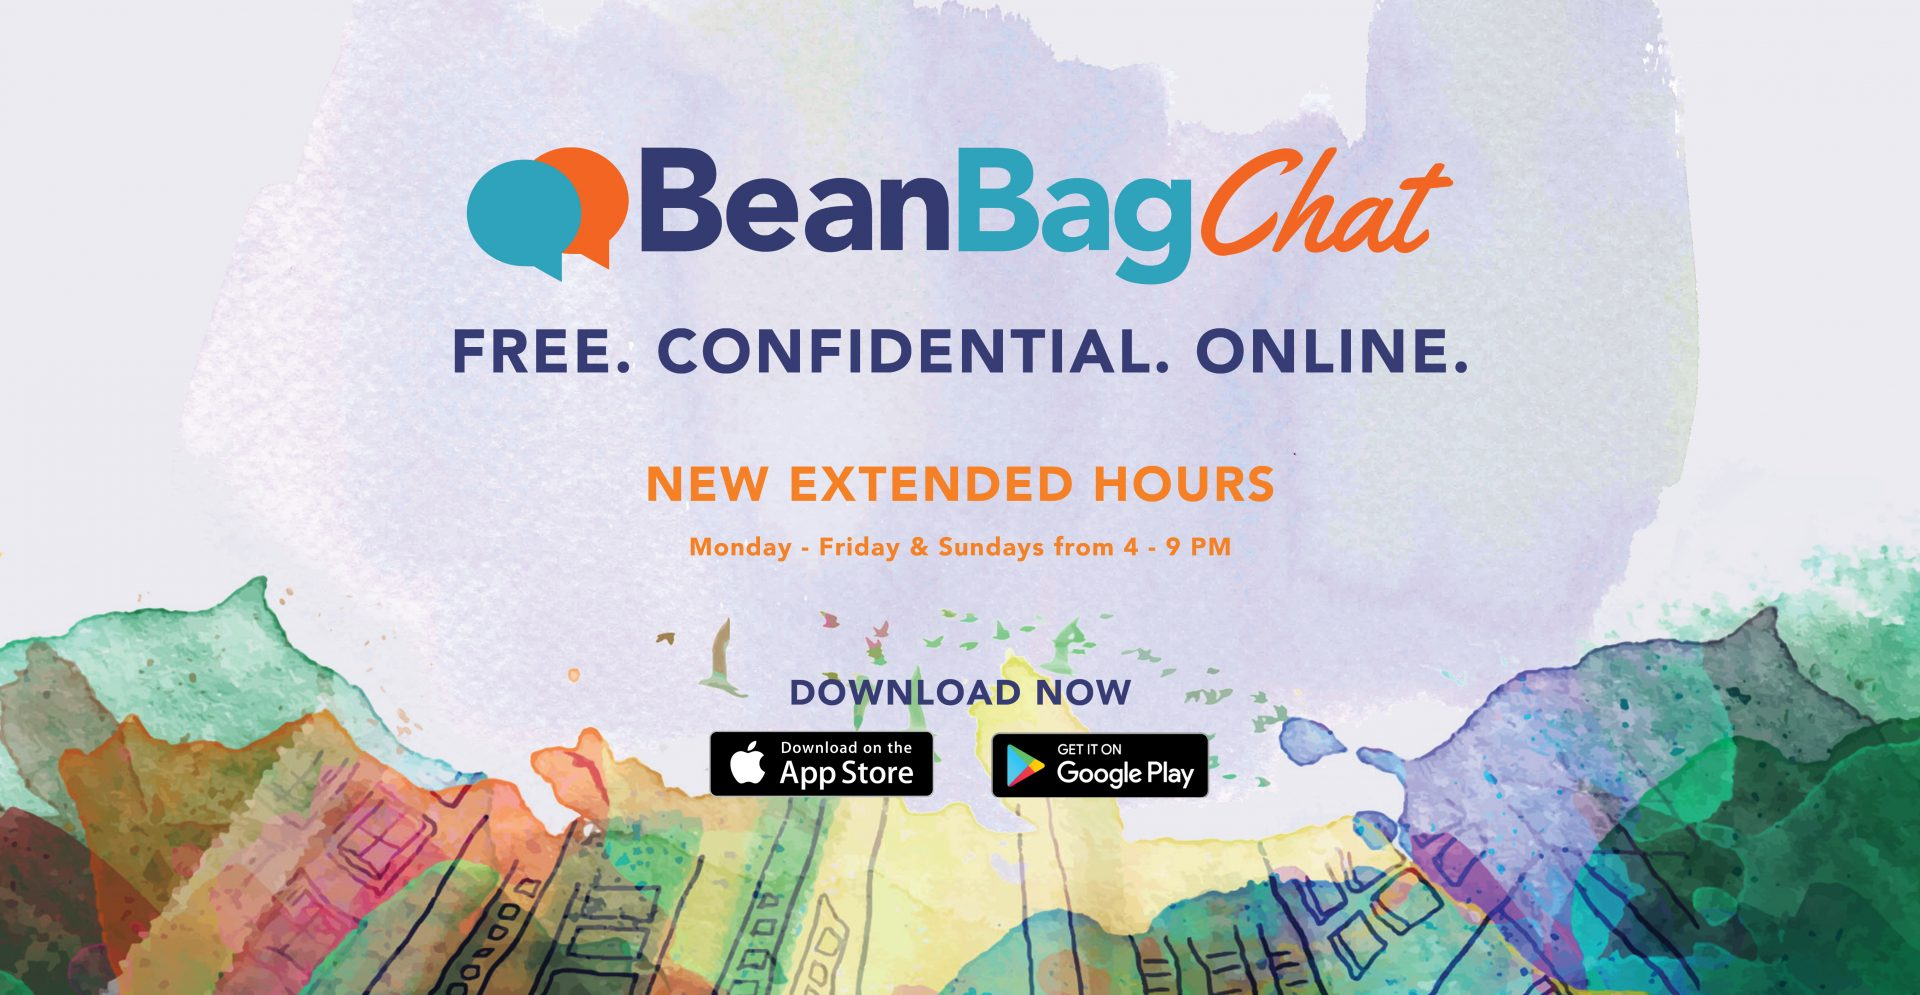 BeanBag chat Free , confidential, online New Extended hours Monday-Friday and Sunday from 4-9PM Download now Download on App Store and Download on Google play Image